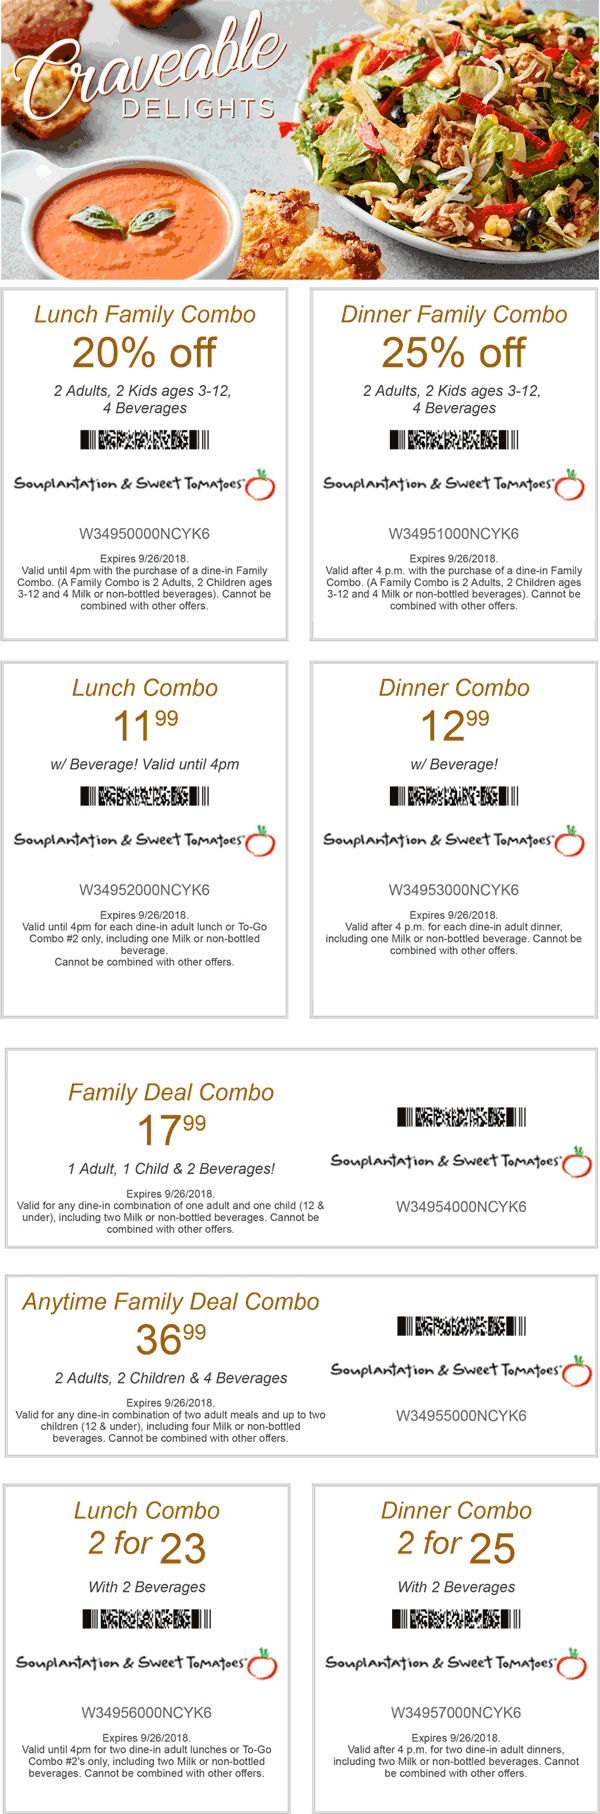 Sweet Tomatoes Coupon November 2018 25% off dinner & more at Souplantation & Sweet Tomatoes